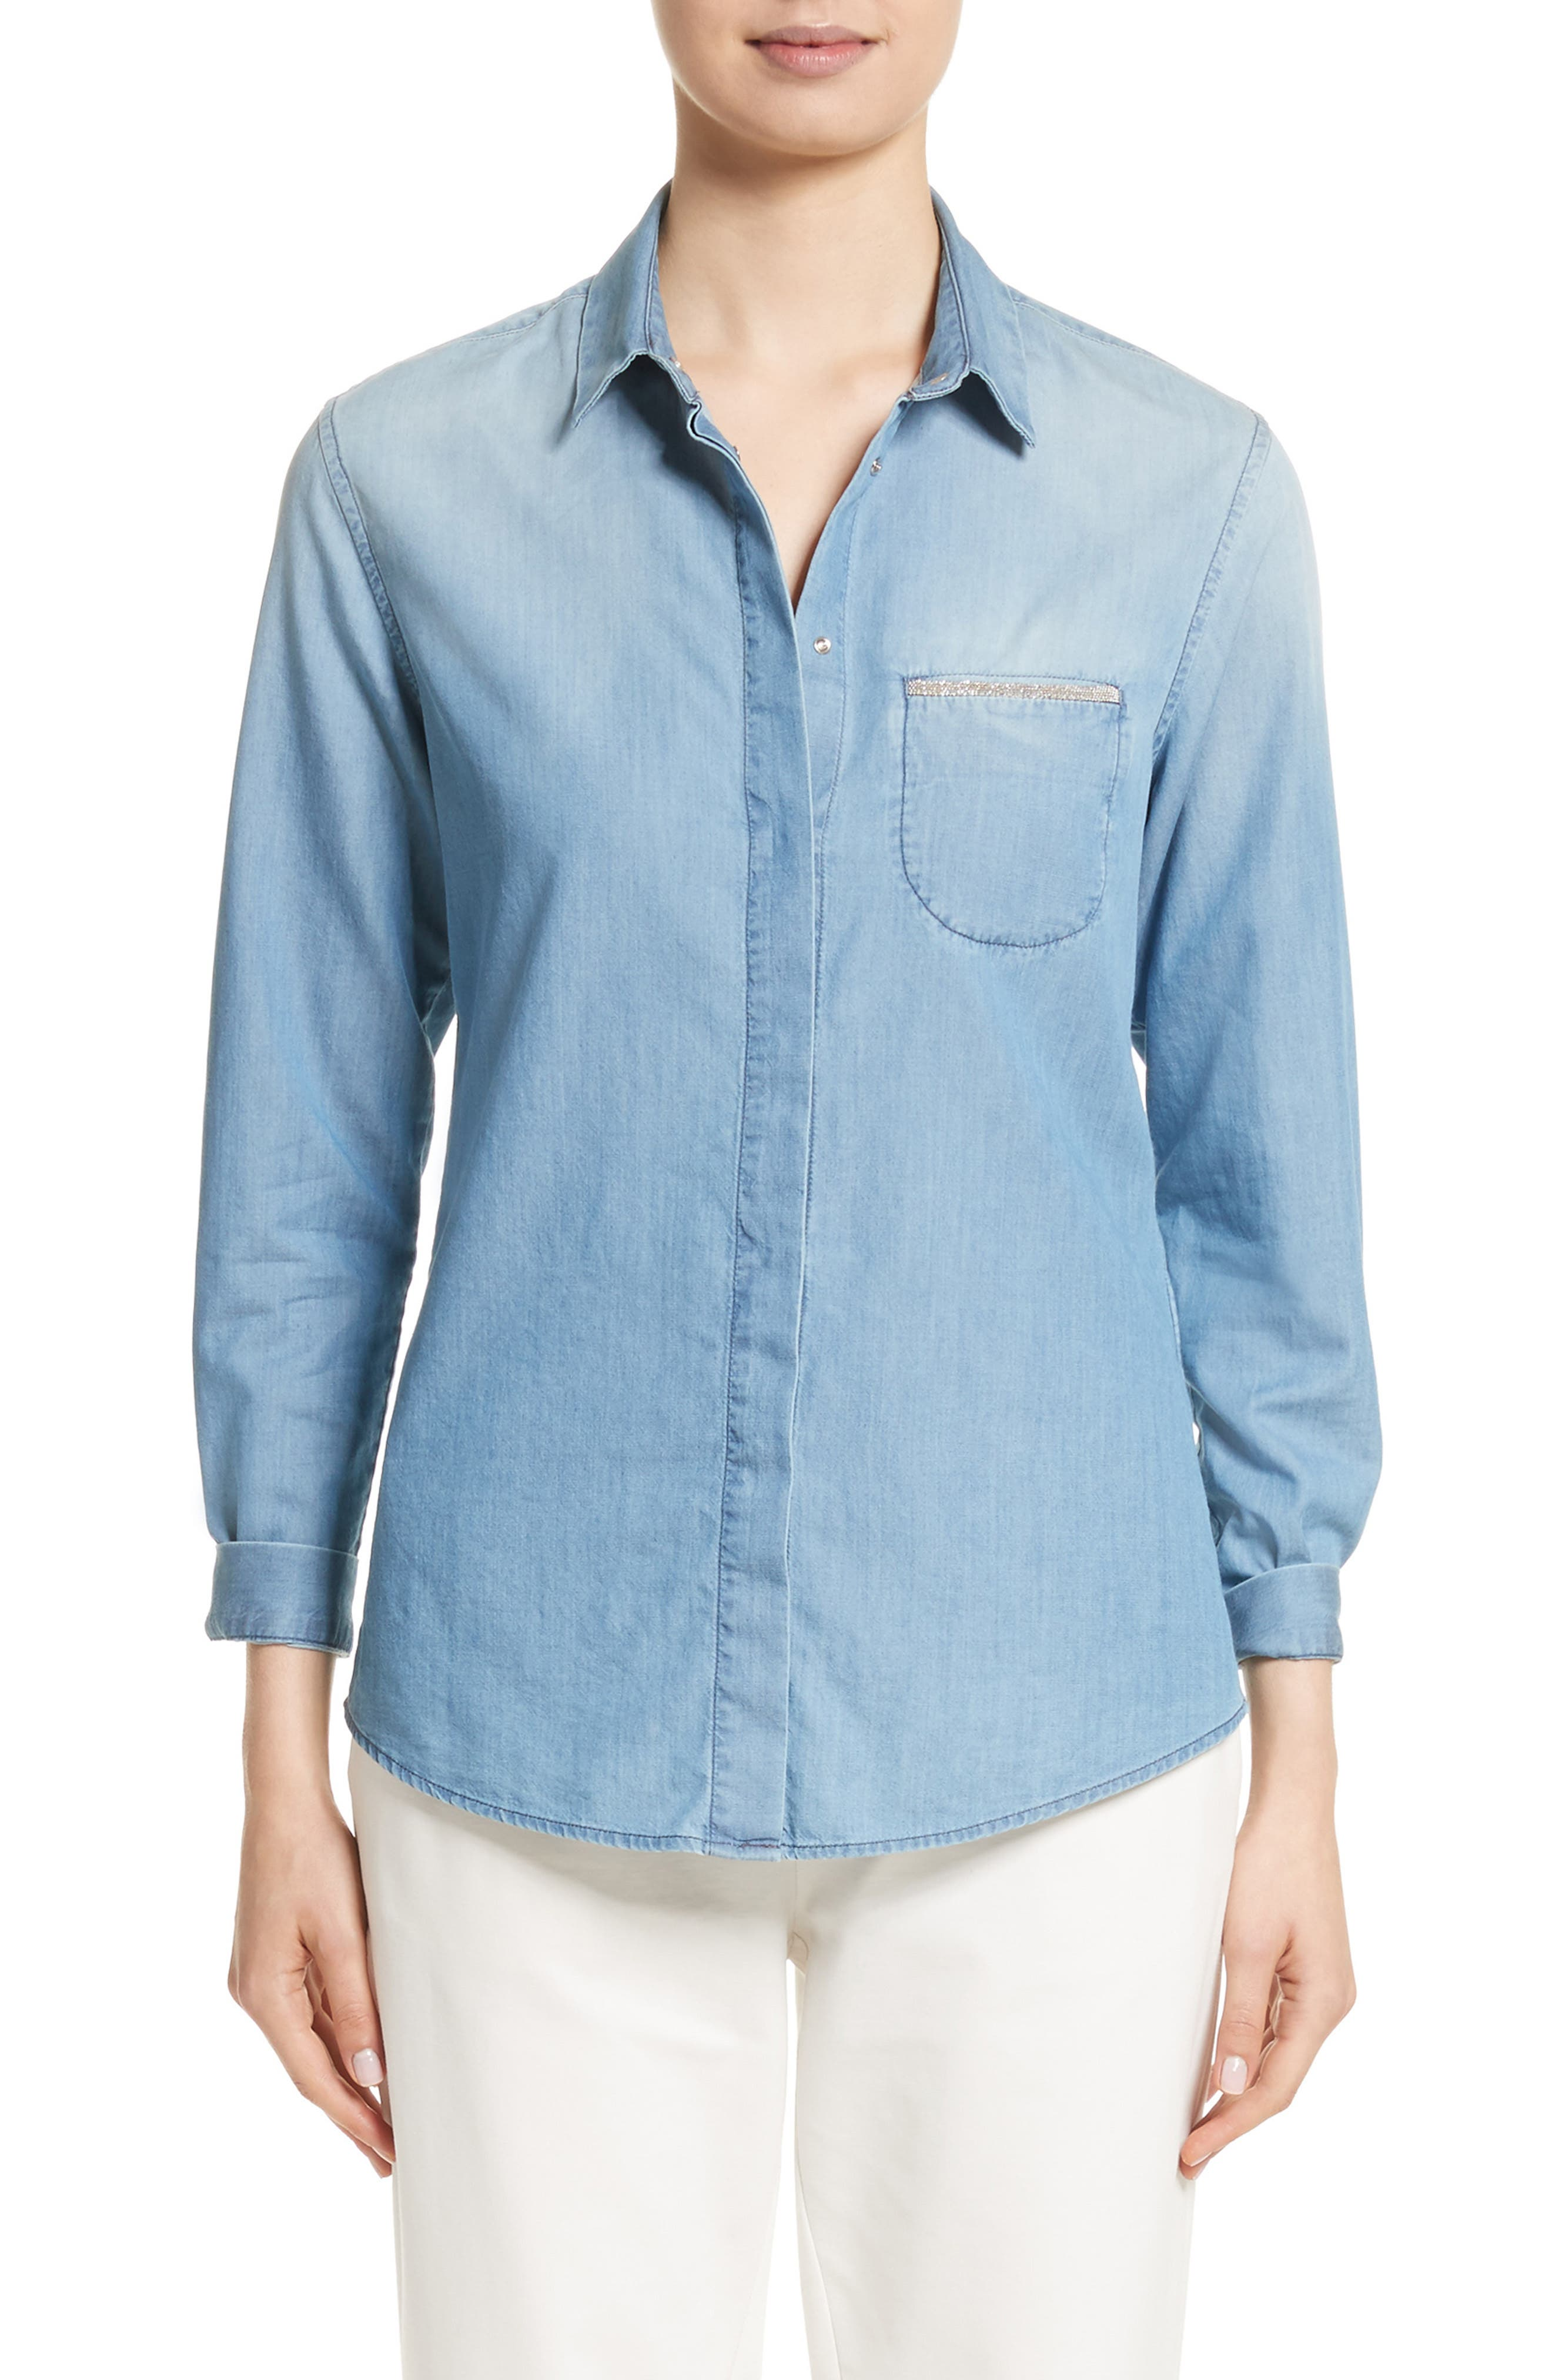 Cotton & Cashmere Chambray Blouse,                             Main thumbnail 1, color,                             Denim Blue